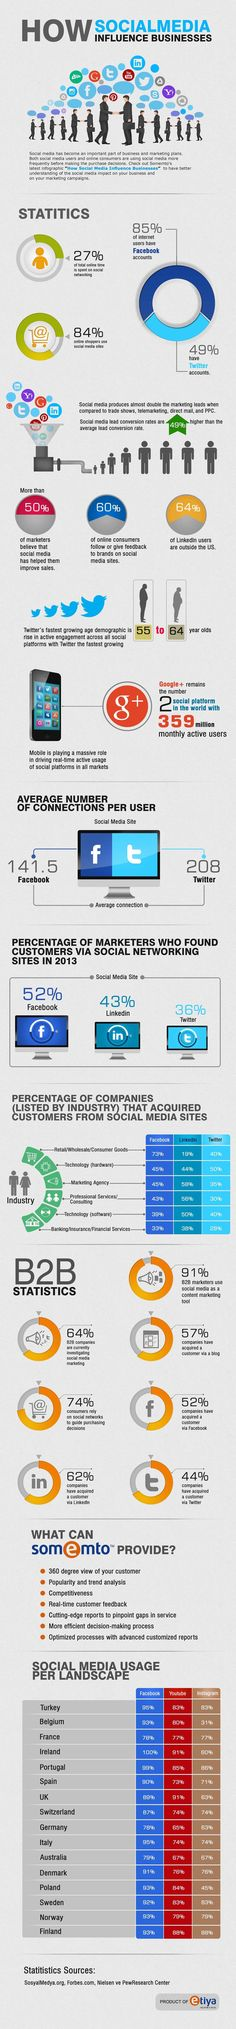 Outstanding! How Social Media Influences Business [INFOGRAPHIC] #social #digital #marketing